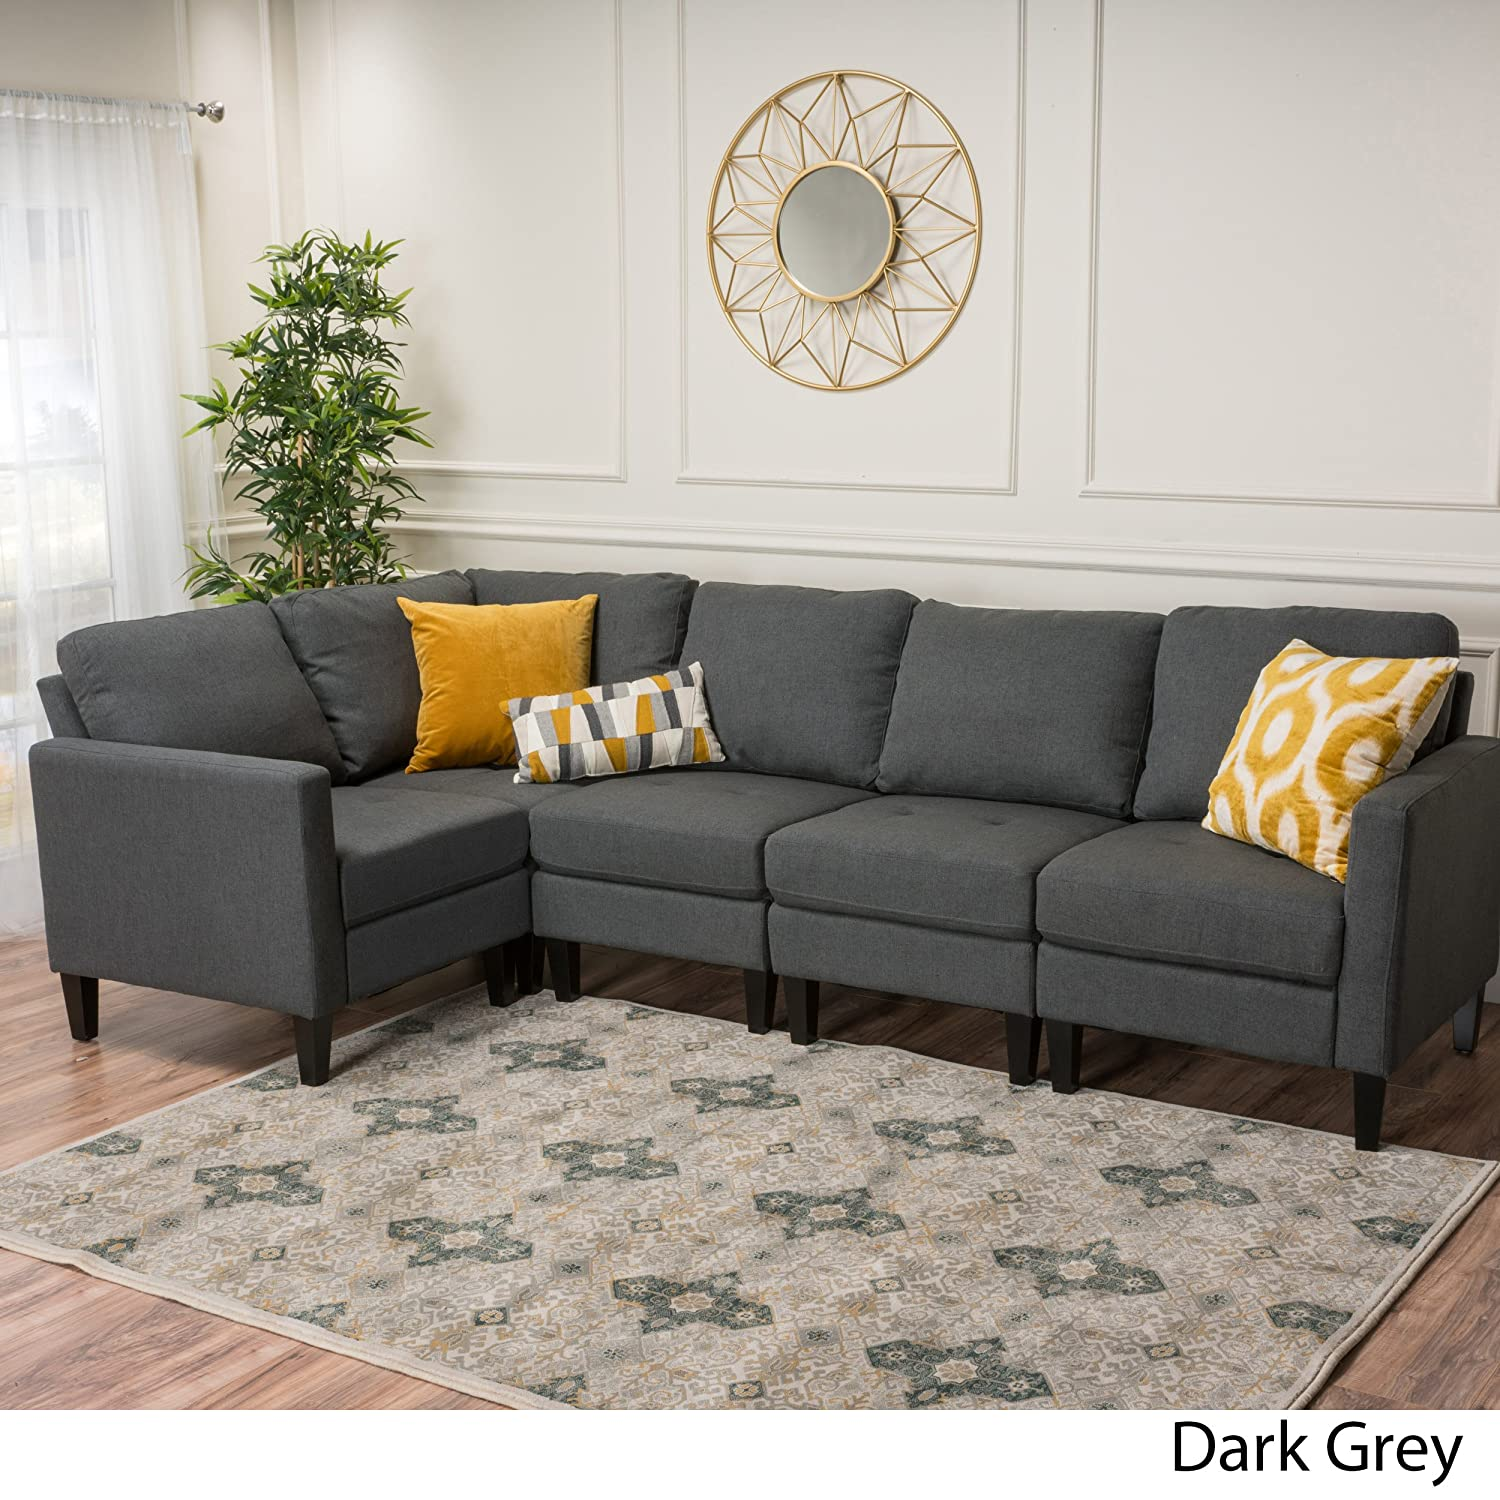 Enjoyable Christopher Knight Home 300121 Carolina Dark Grey Fabric Sectional Couch Theyellowbook Wood Chair Design Ideas Theyellowbookinfo